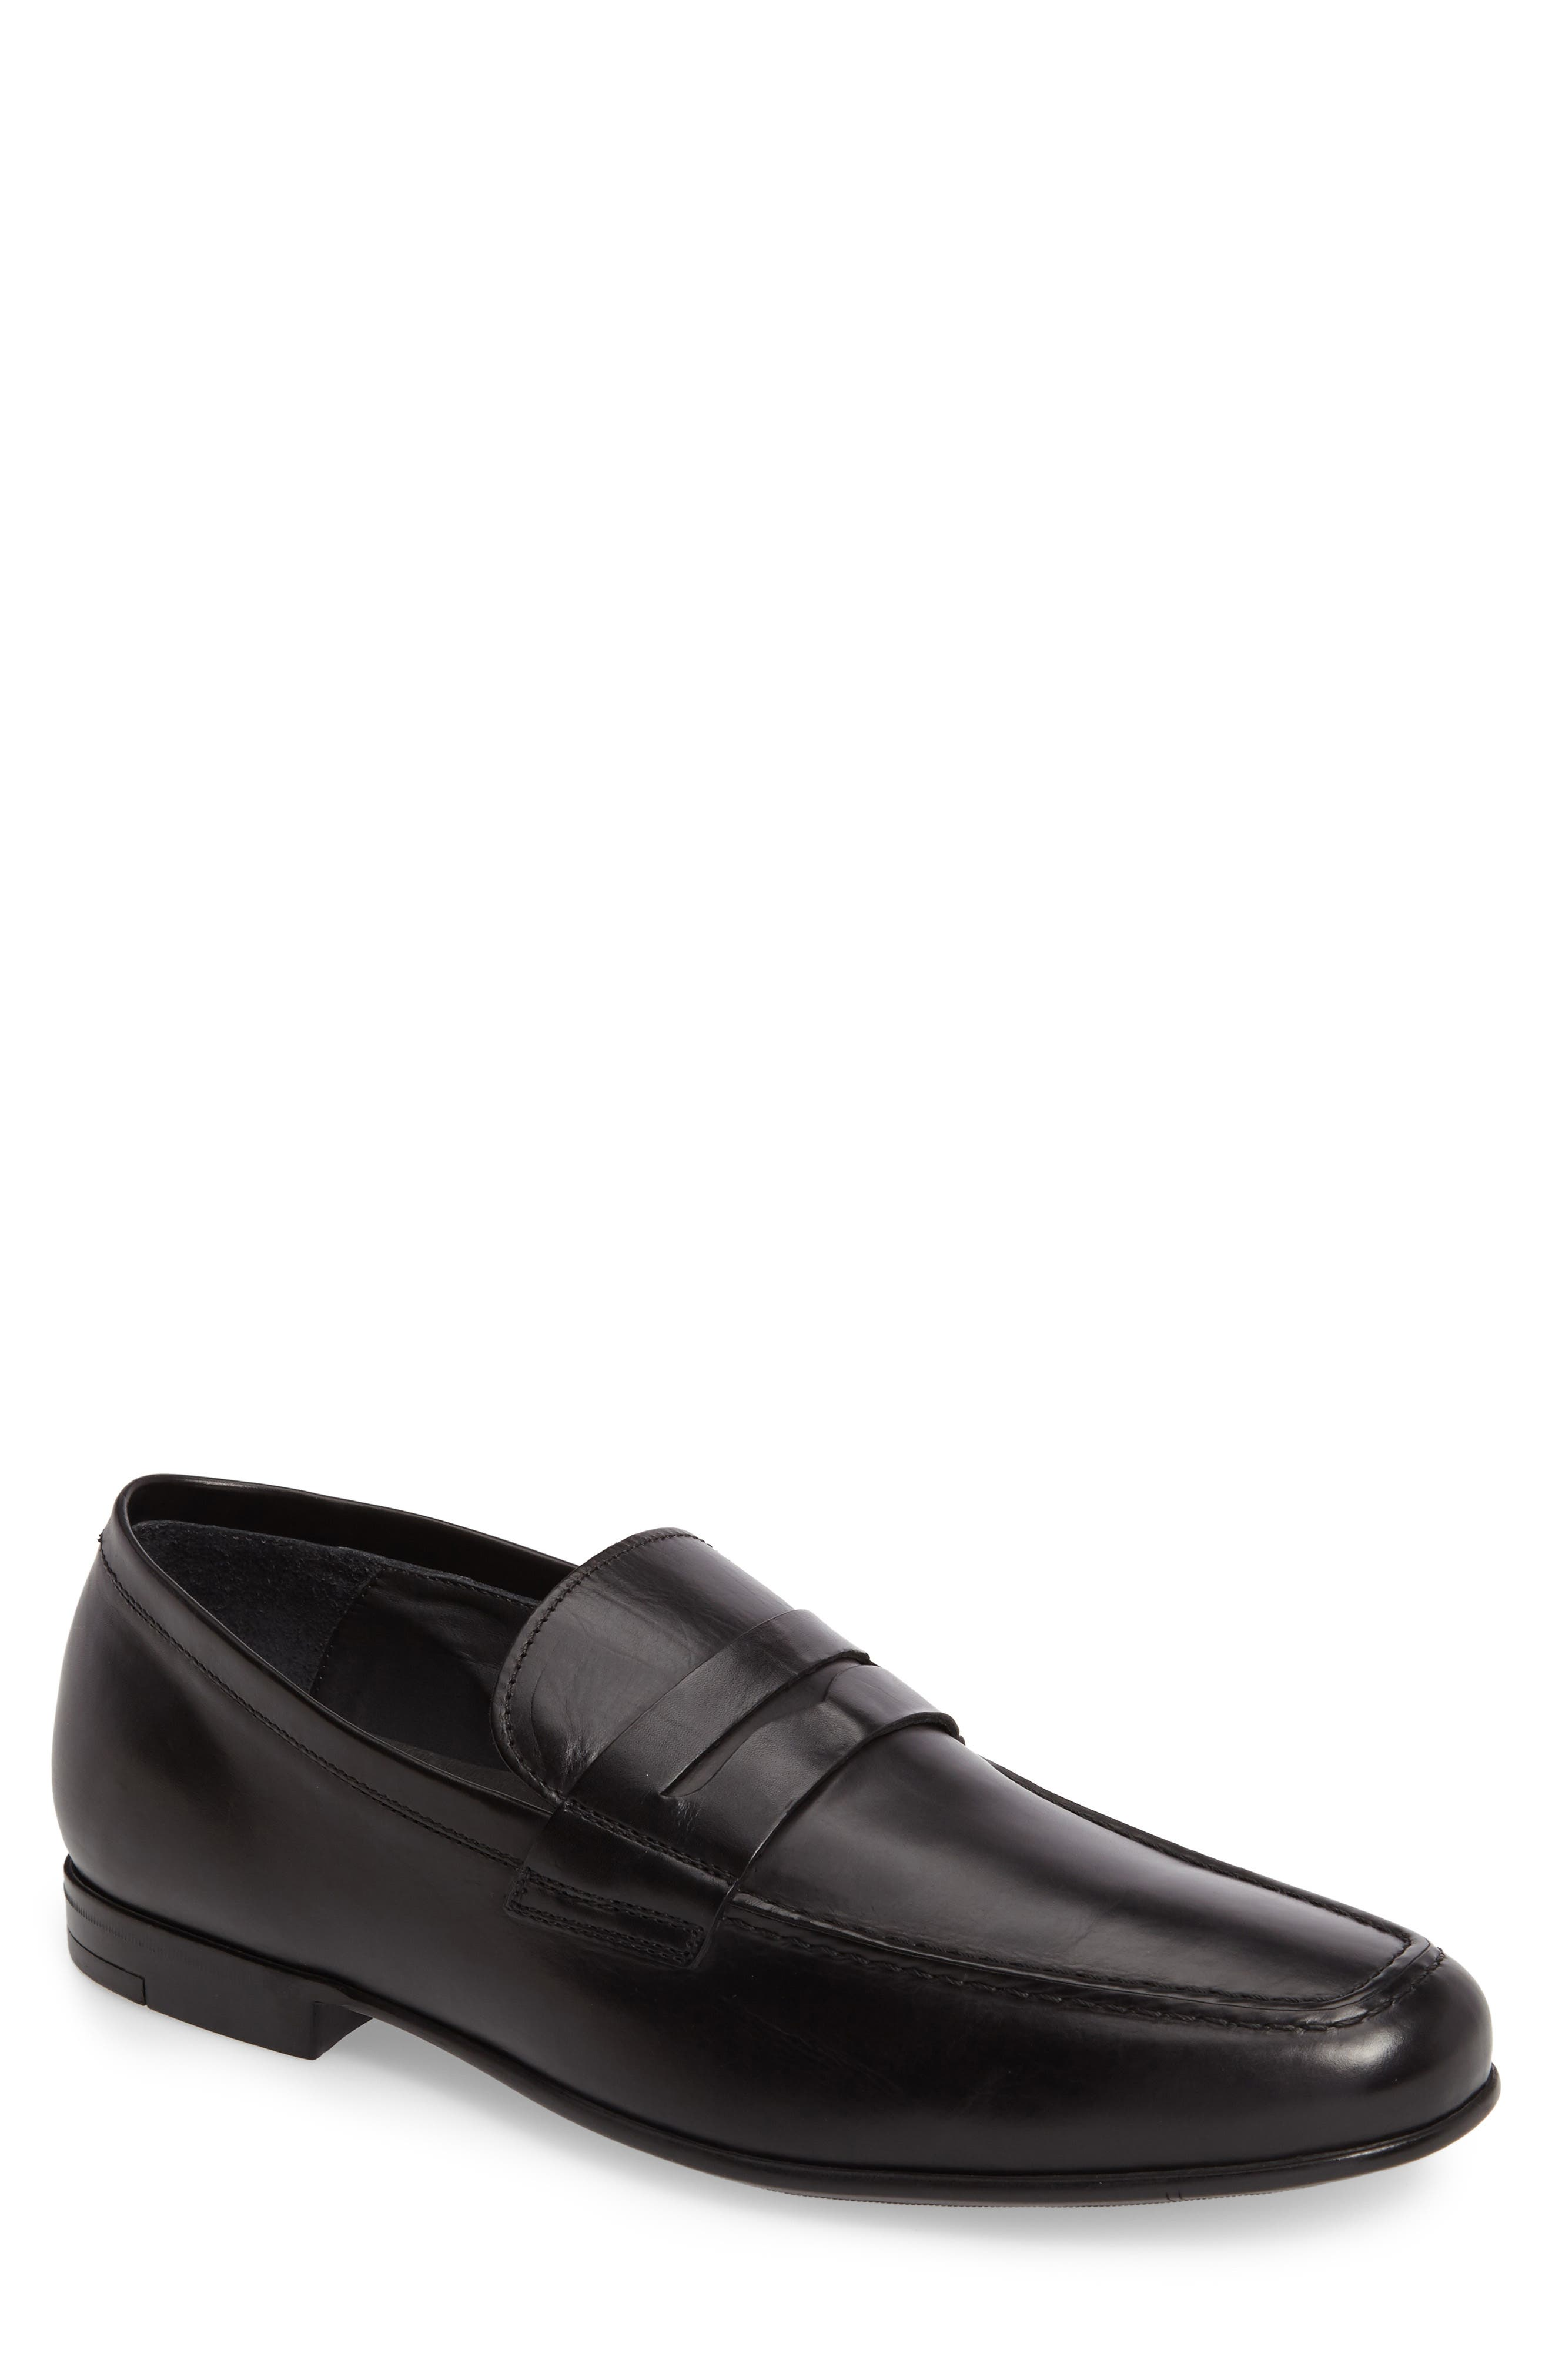 Main Image - To Boot New York Alek Penny Loafer (Men)